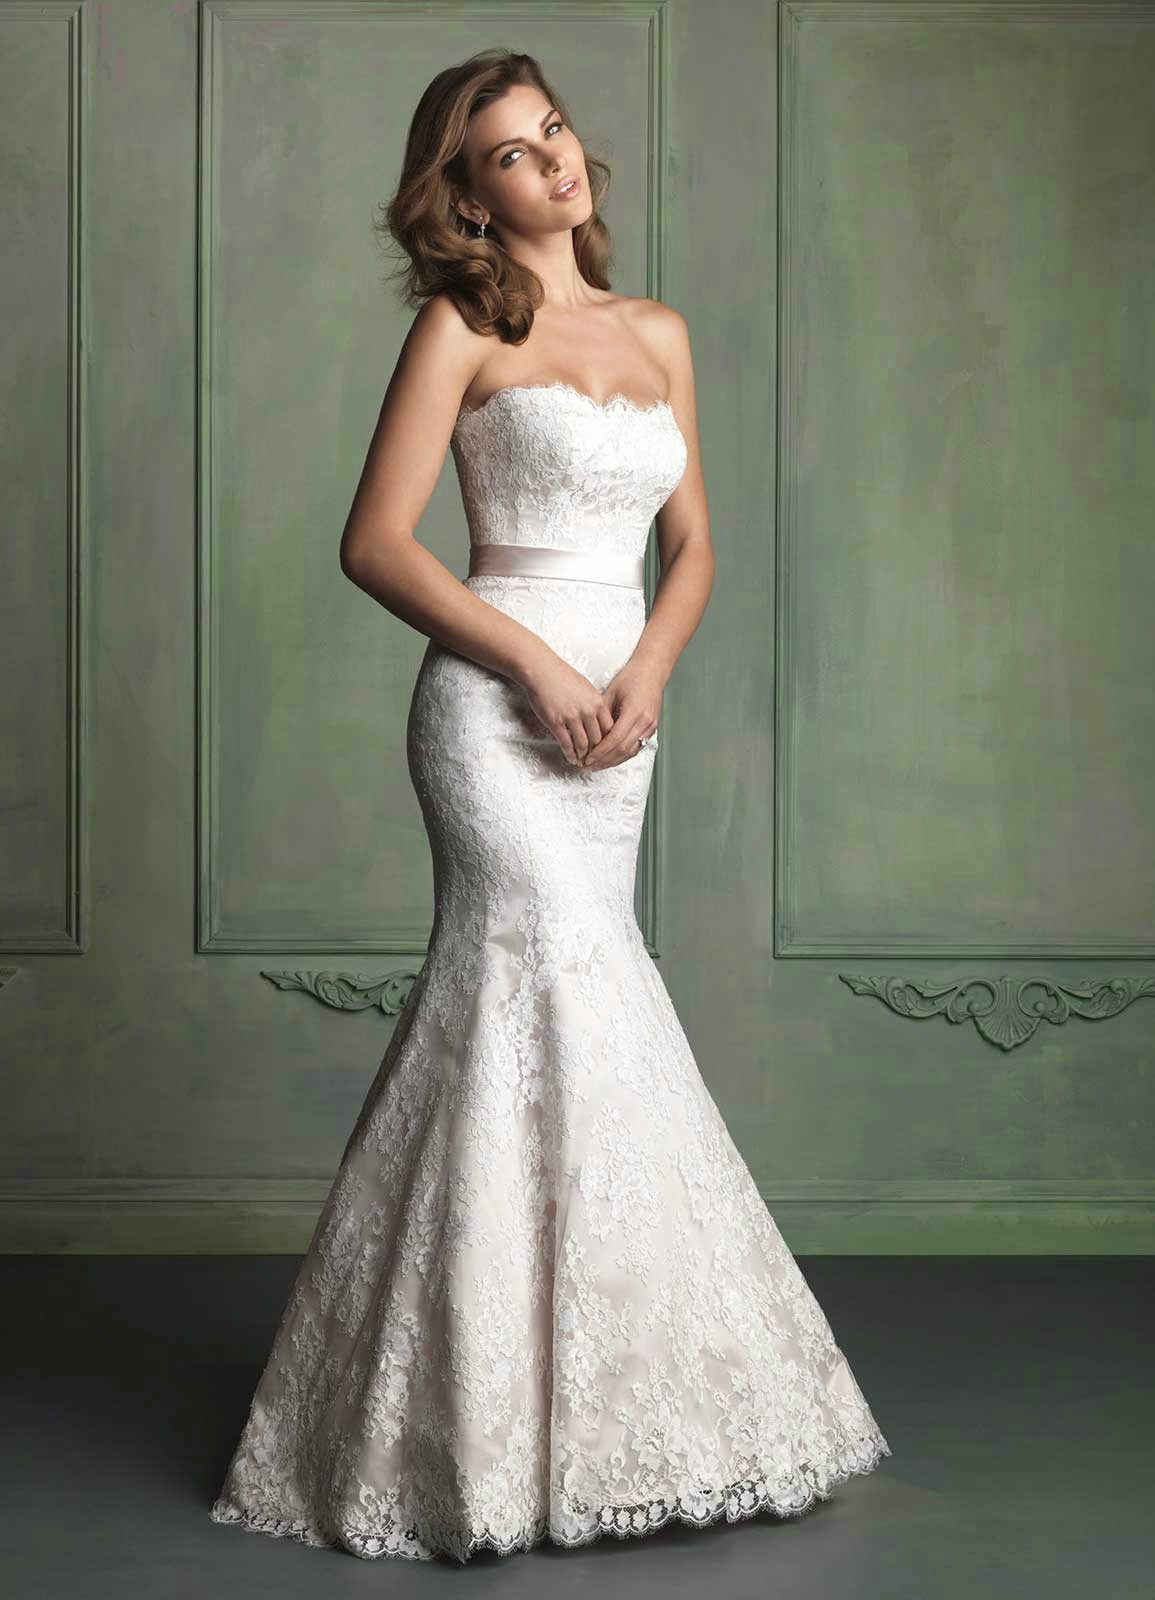 Lace Wedding Dresses UK Photos Concepts Ideas